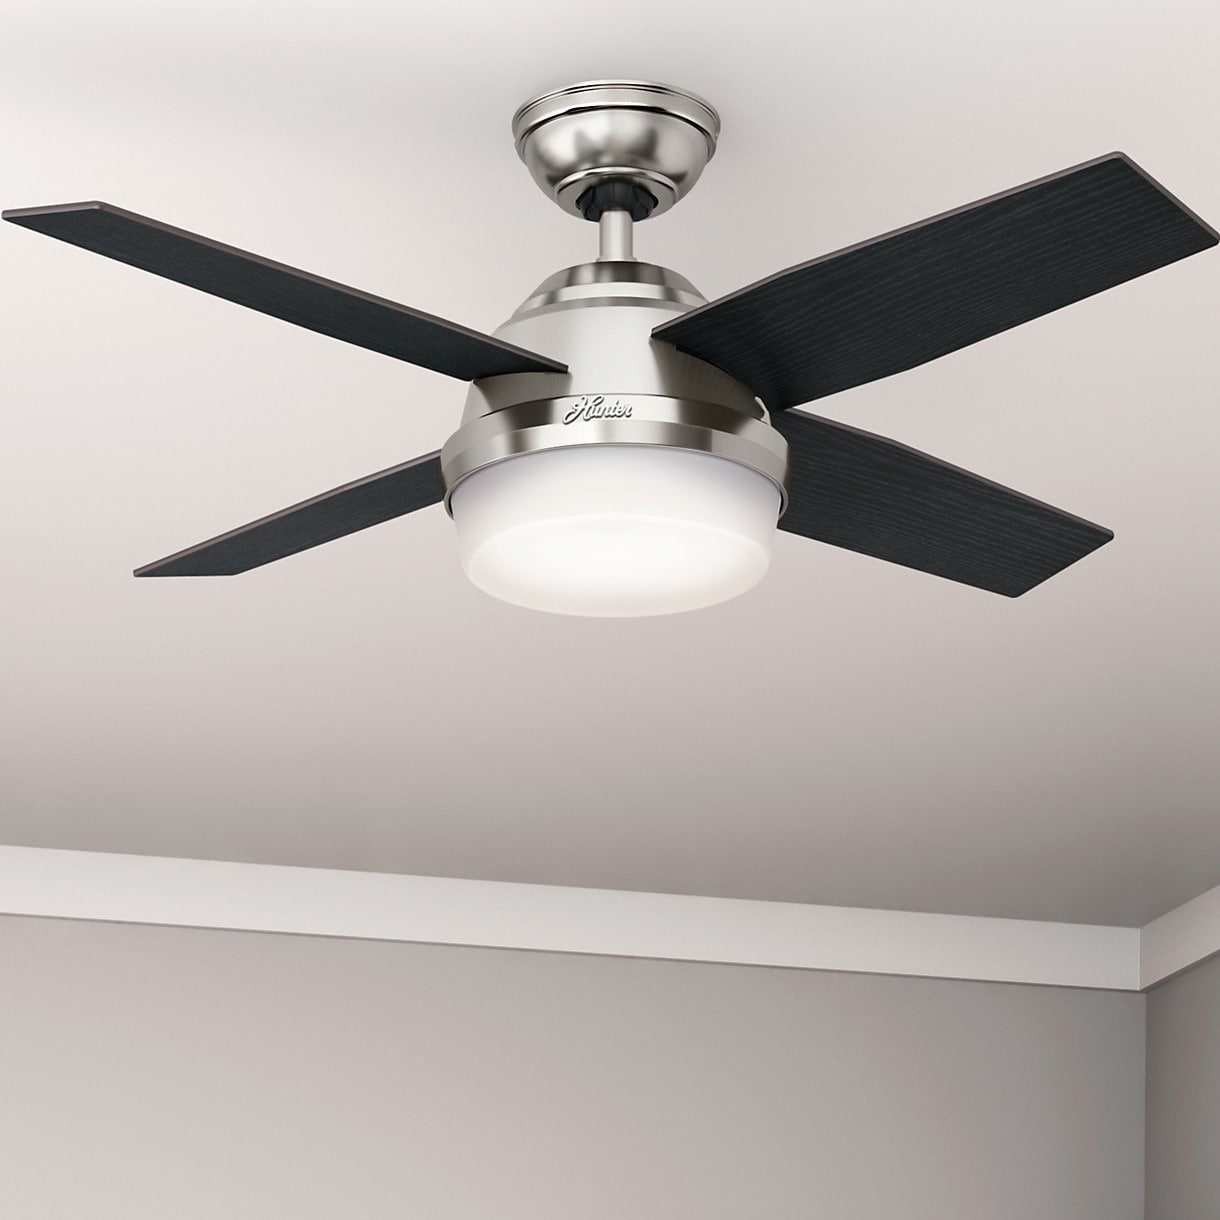 inch tulum outdoor kl smsender ceilings co fans ceiling